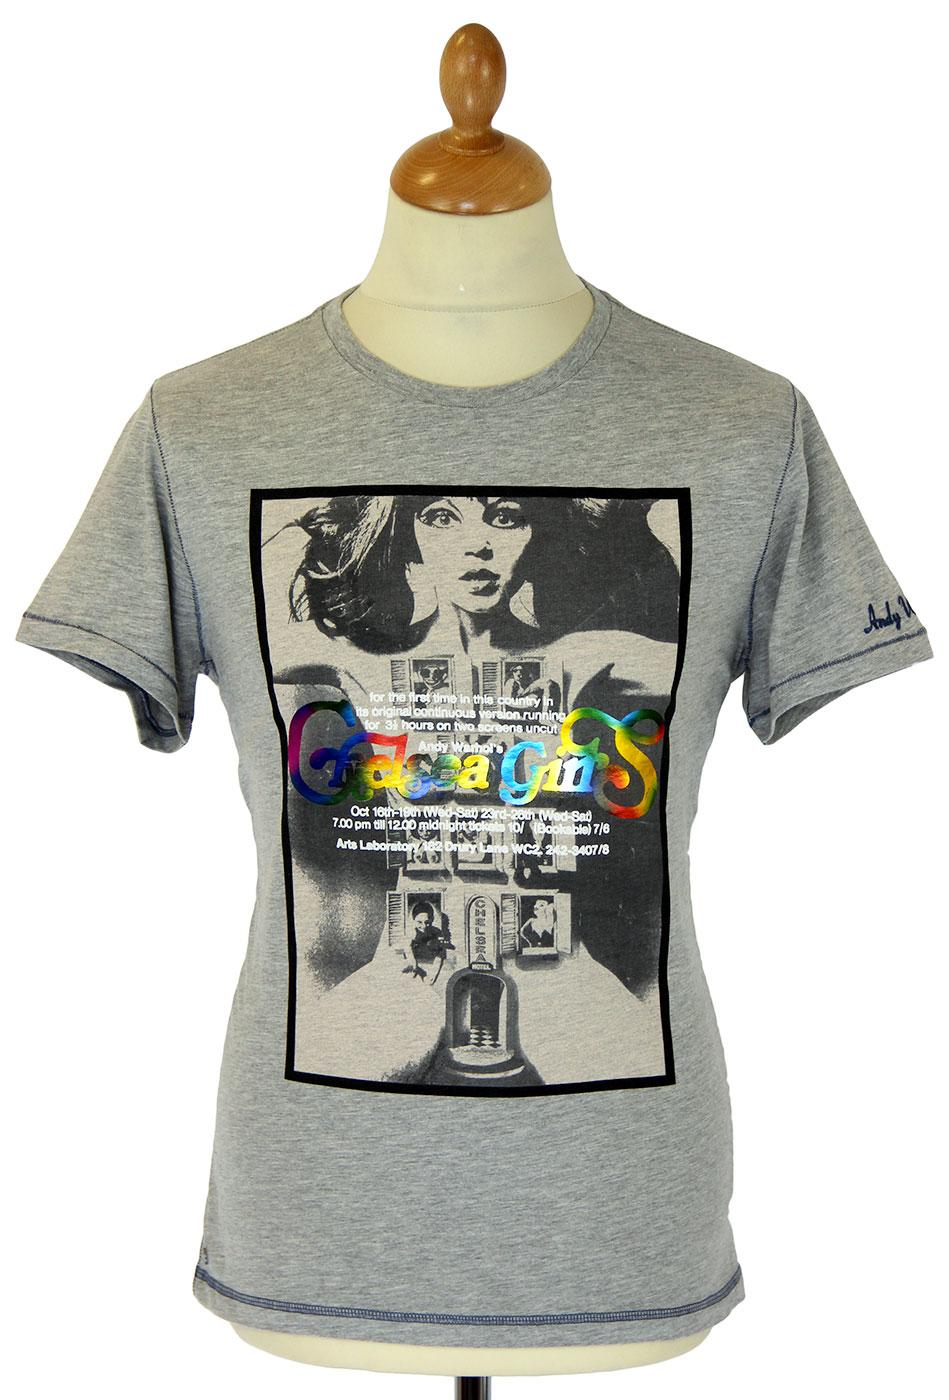 andy warhol by pepe jeans retro chelsea girls poster t shirt. Black Bedroom Furniture Sets. Home Design Ideas